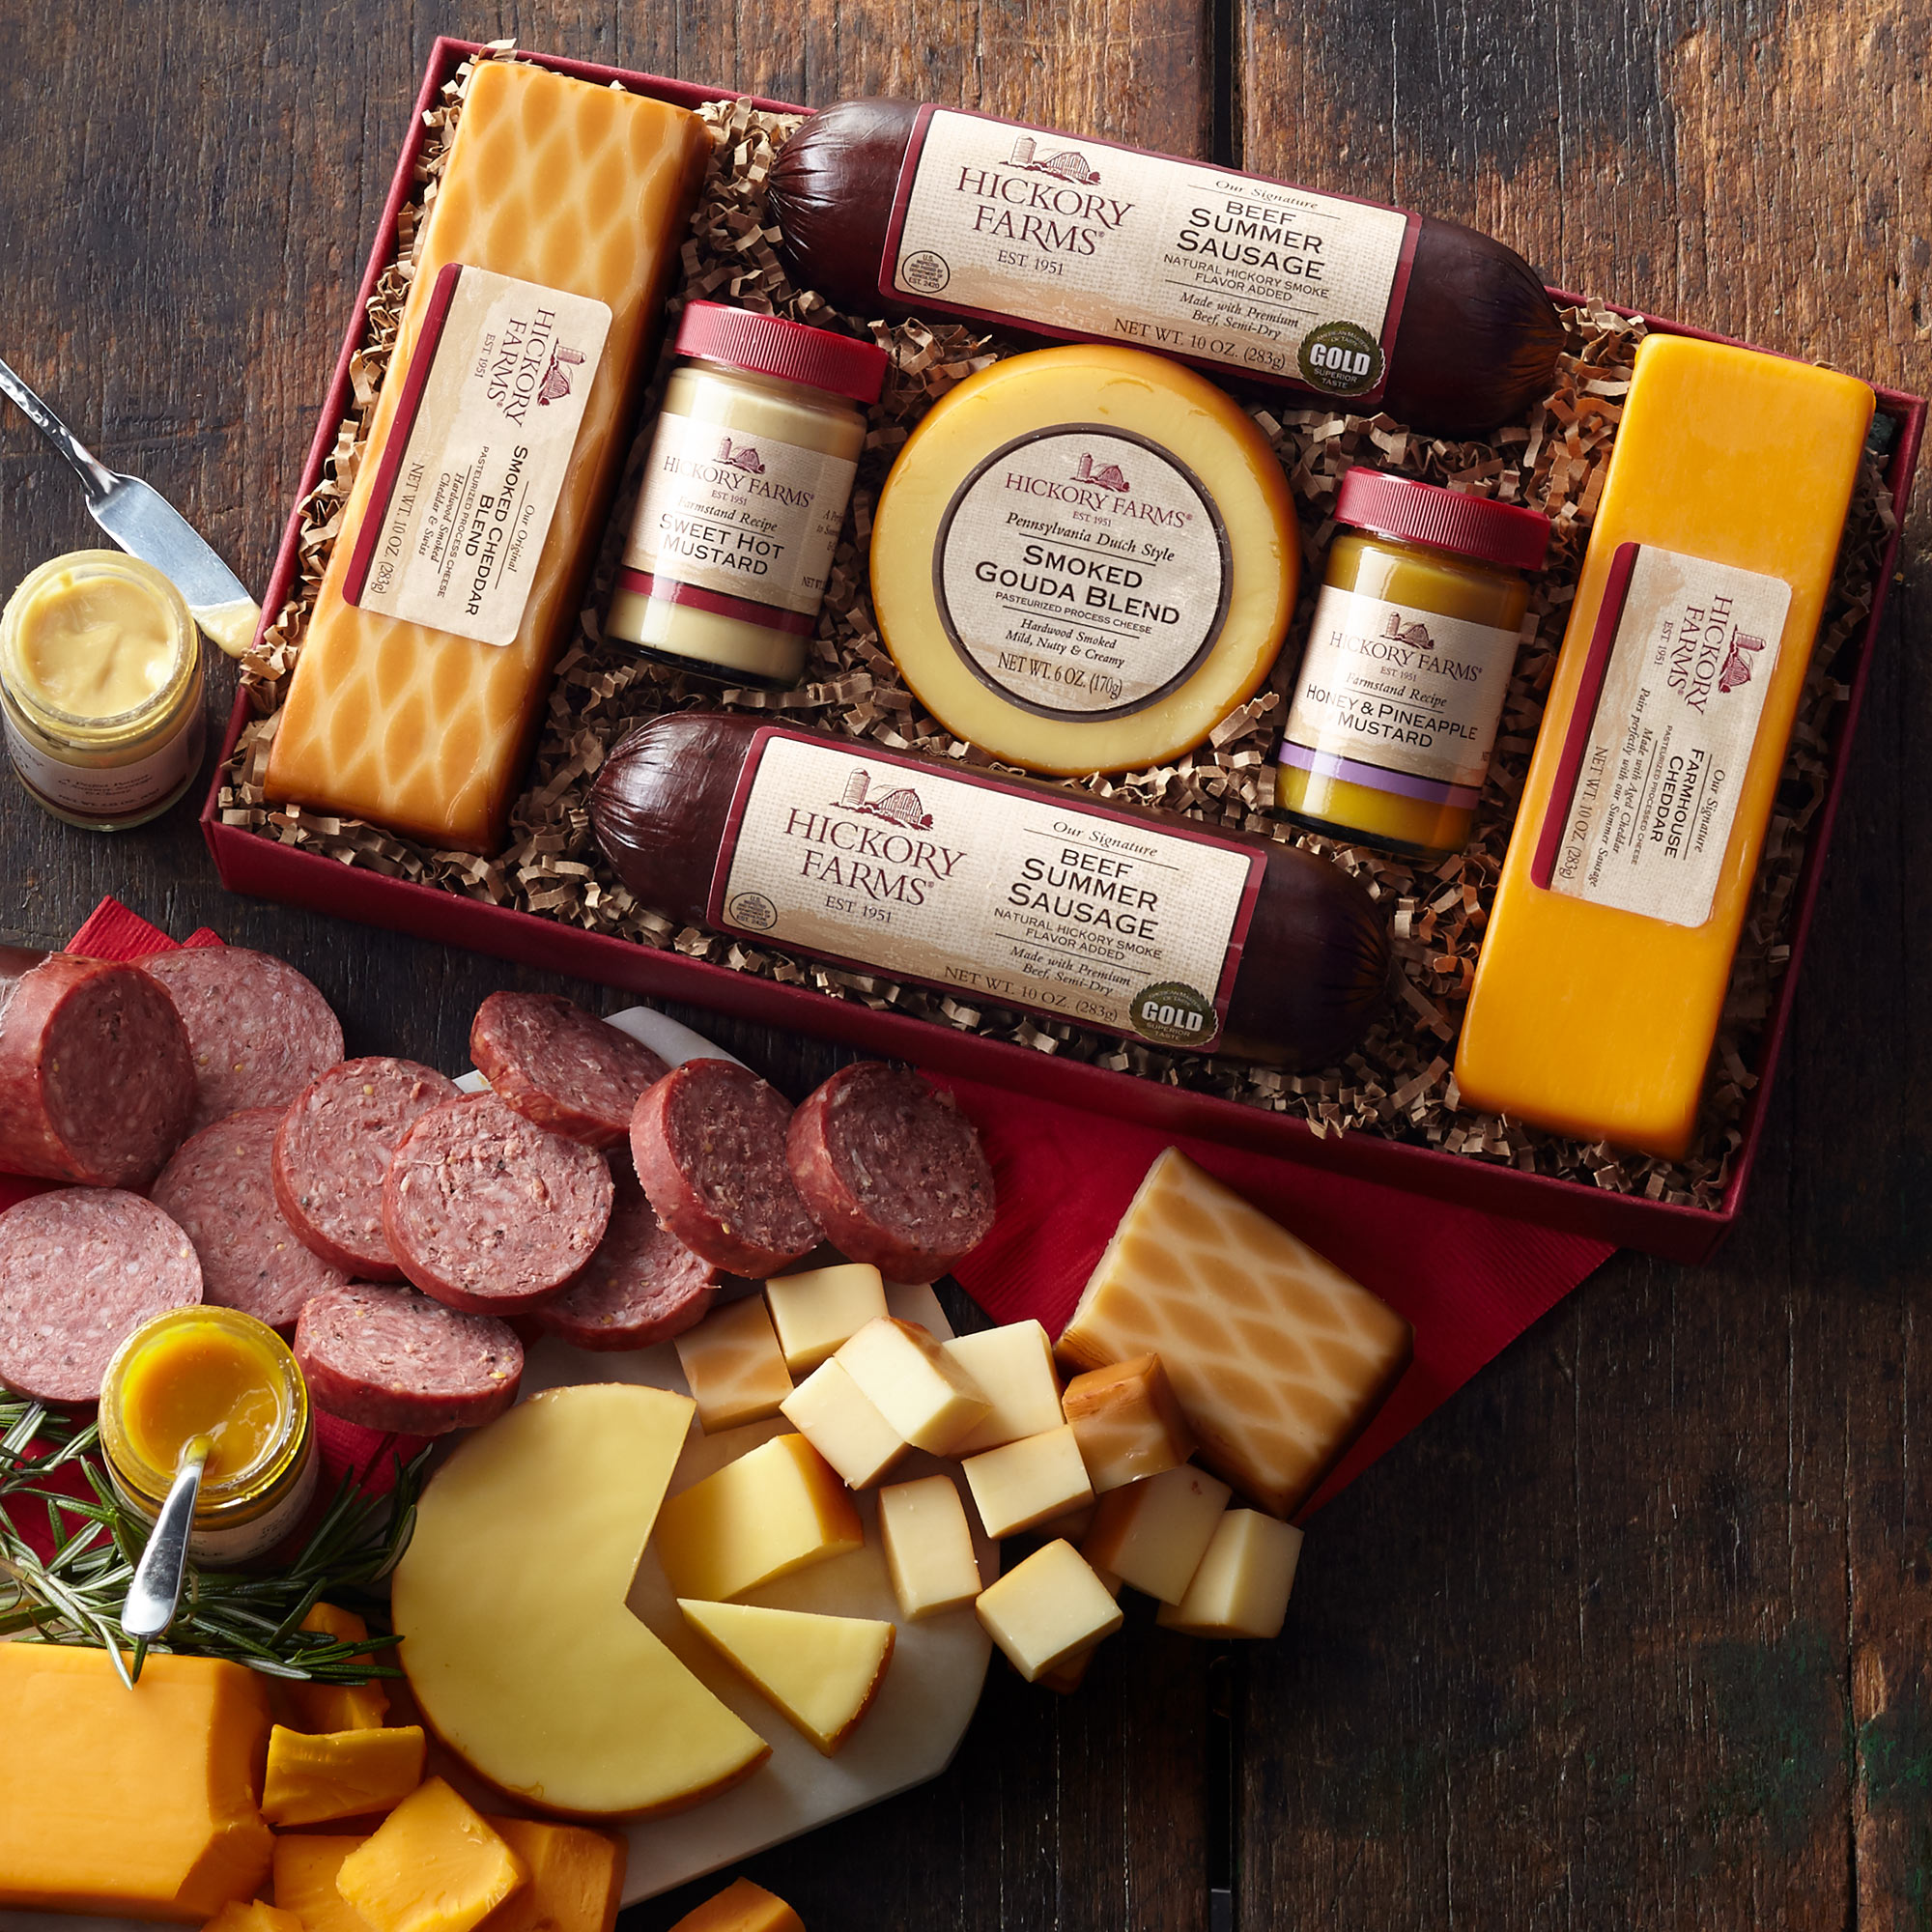 Summer Sausage and Cheese Gift Box Gift | Purchase Our Gourmet ...